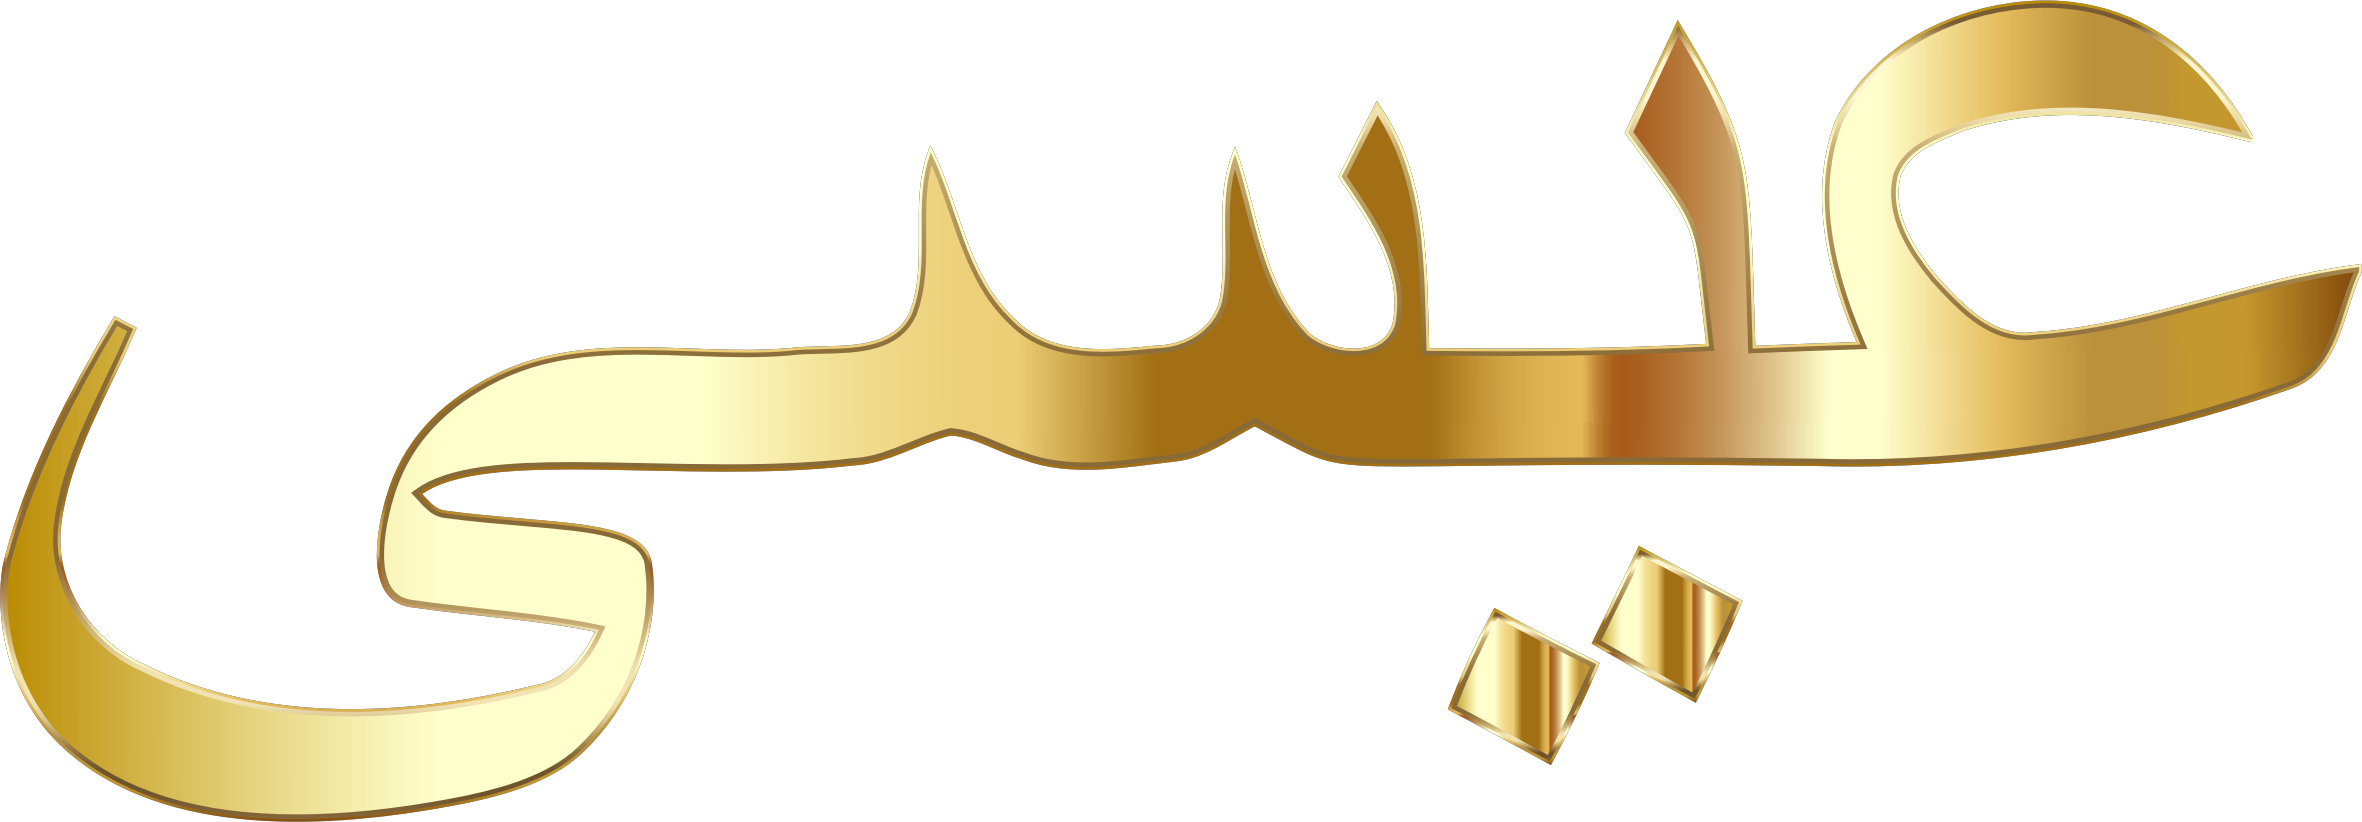 Jesus In Arabic Calligraphy Gold No Background by GDJ